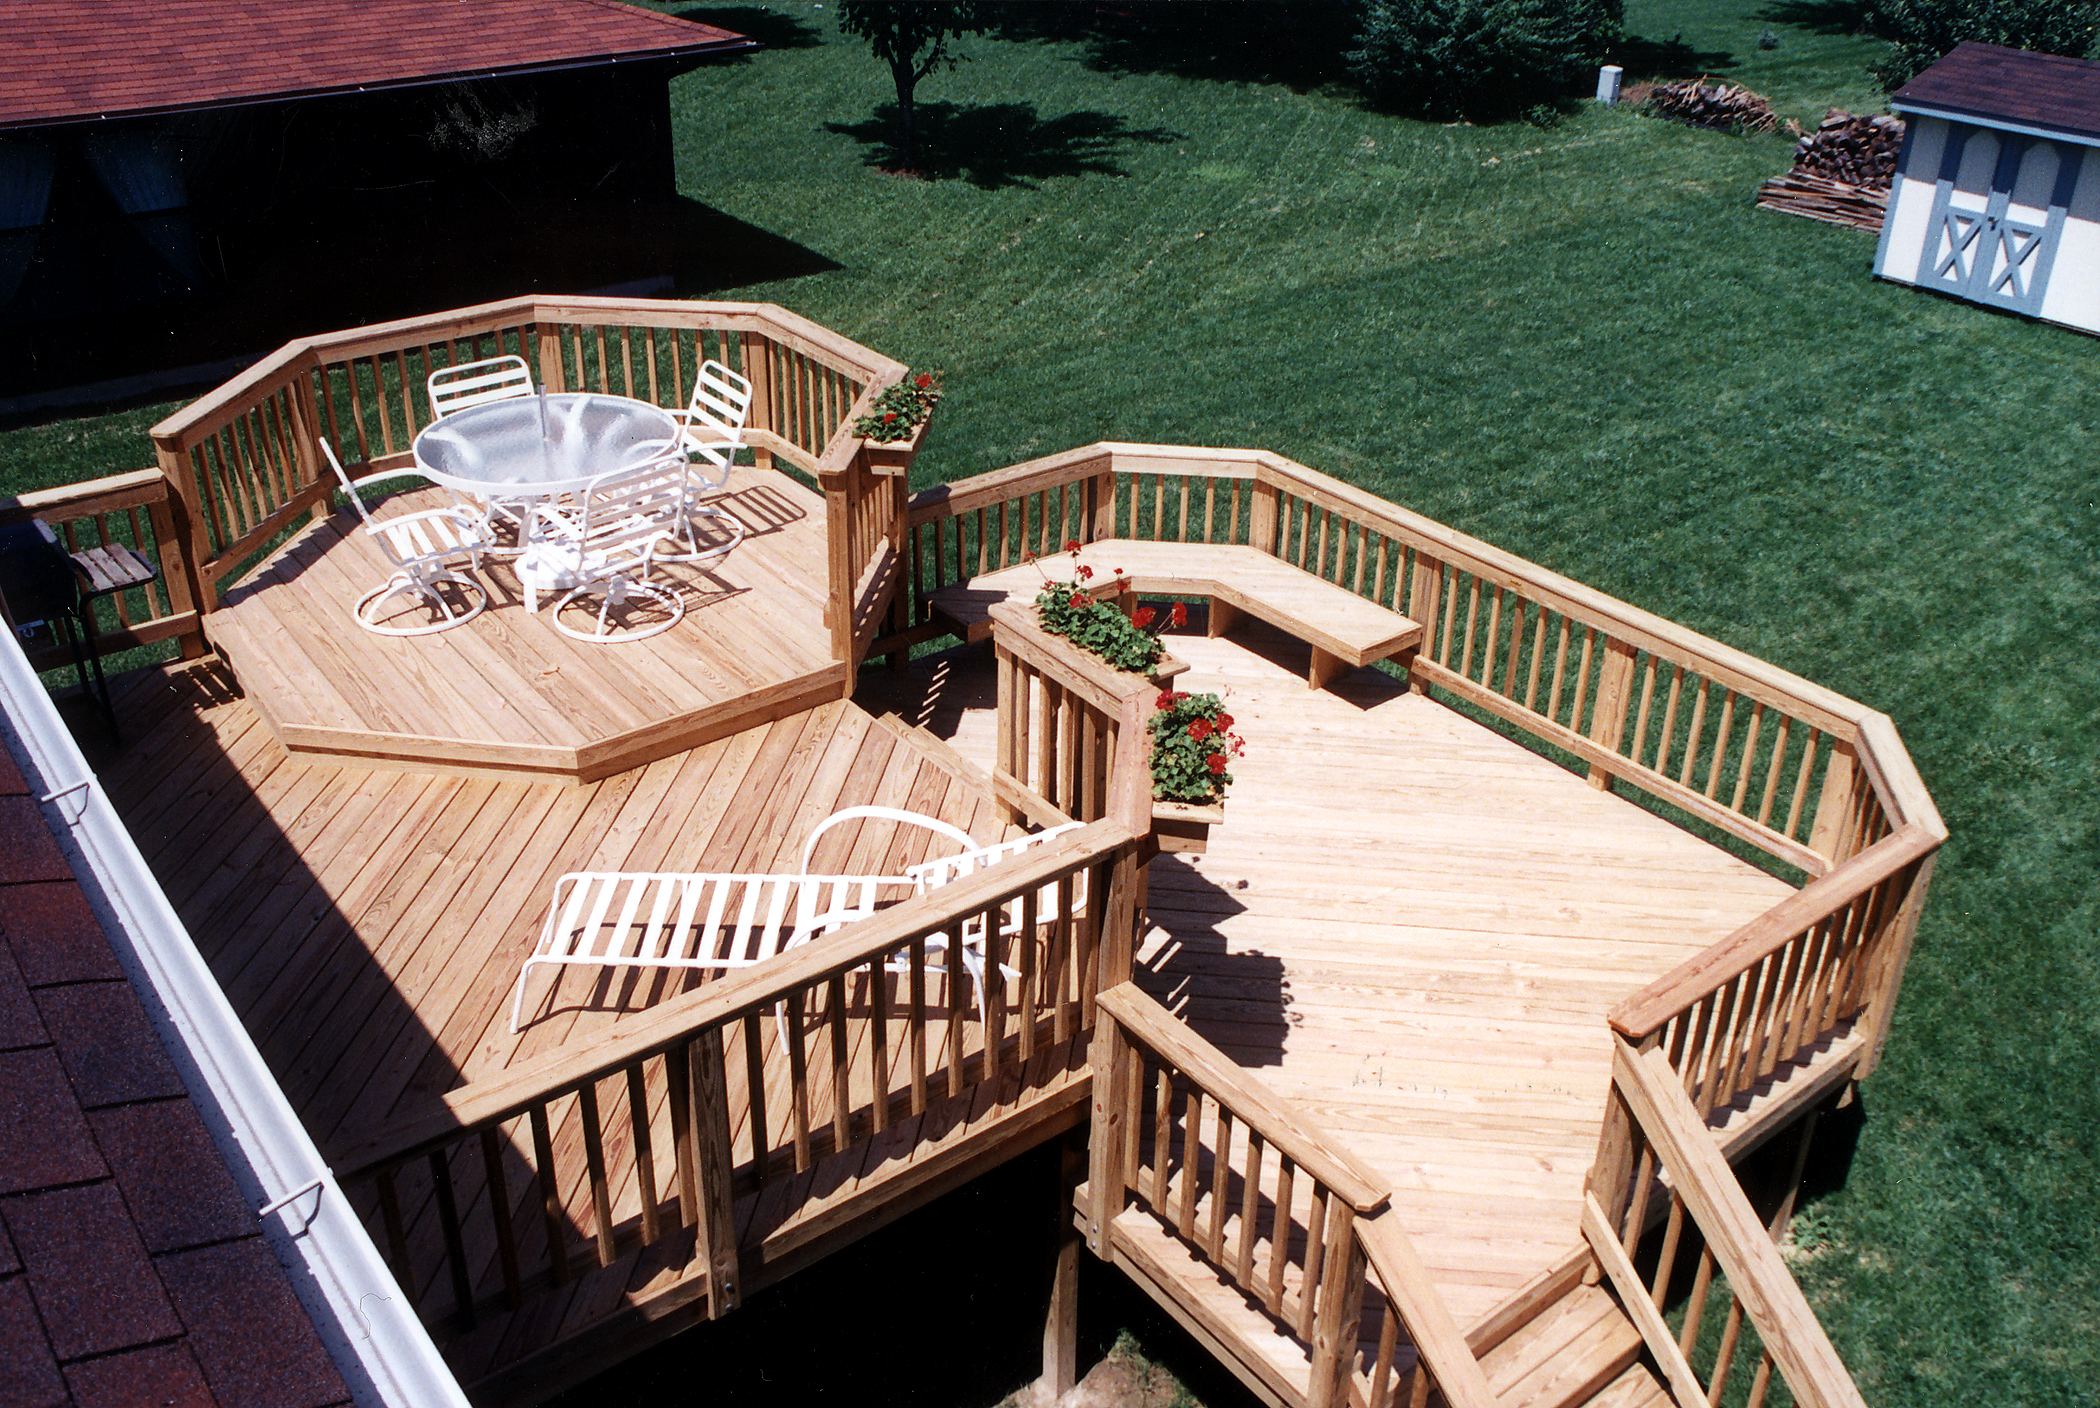 Multilevel deck design ideas by archadeck st louis decks multilevel decks by archadeck baanklon Image collections